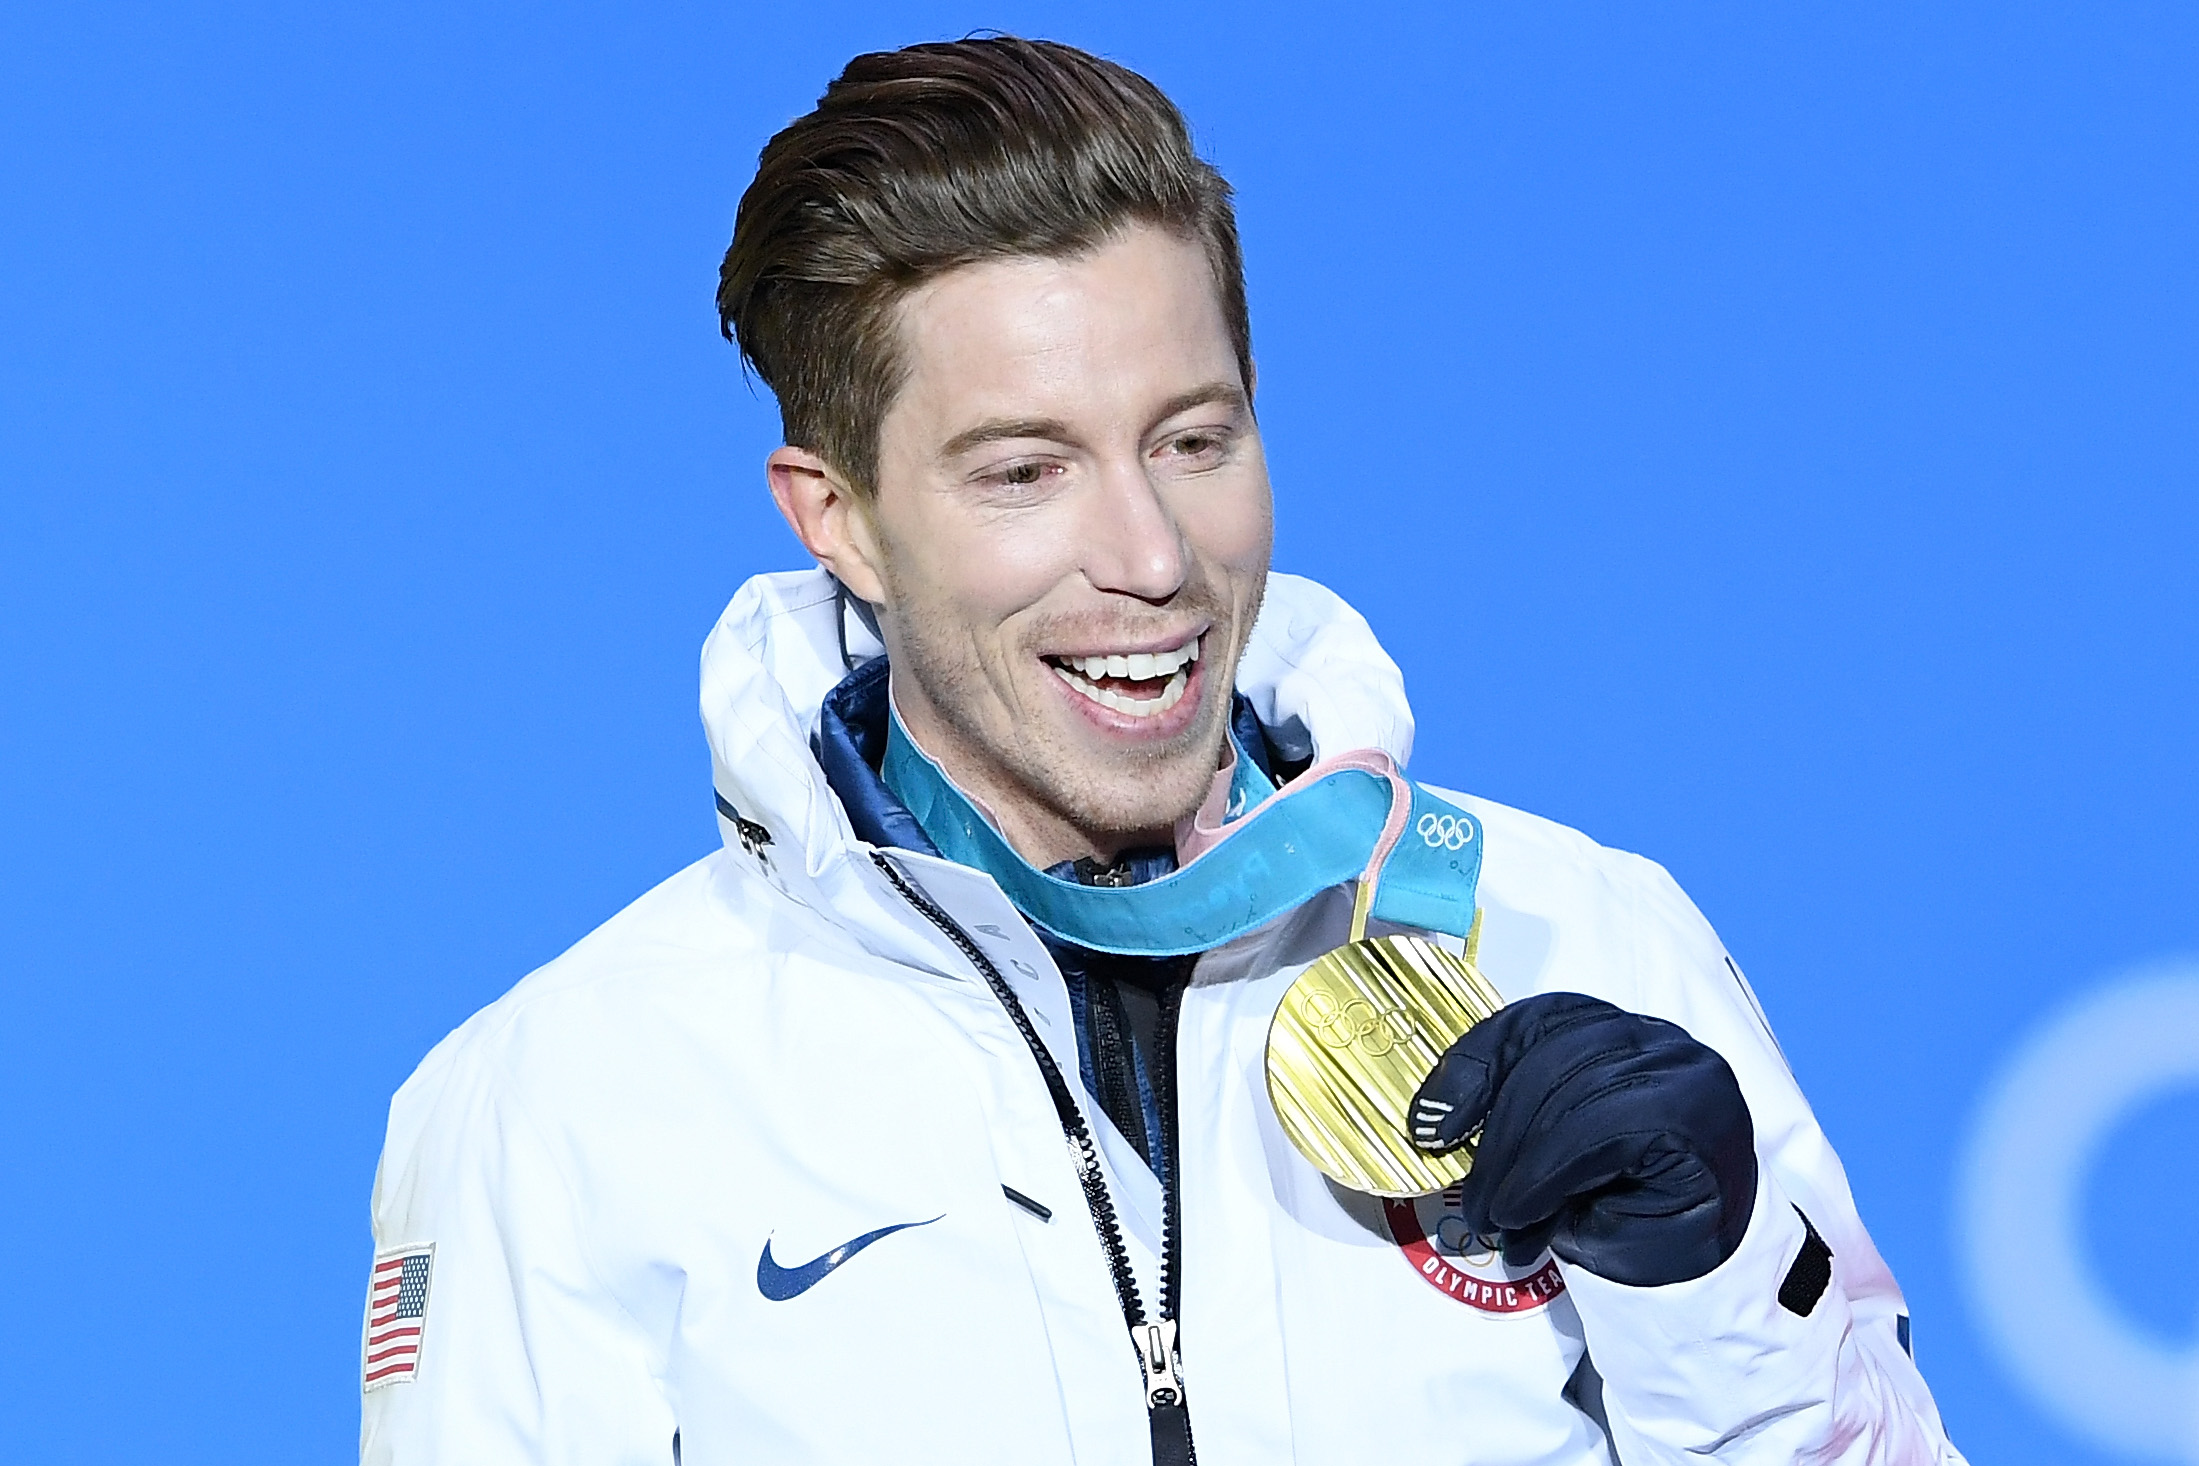 Shaun-White-Regrets-His-Past-Behavior-Apologizes-For-Brushing-Off-Sexual-Harassment-Allegations-As-Gossip